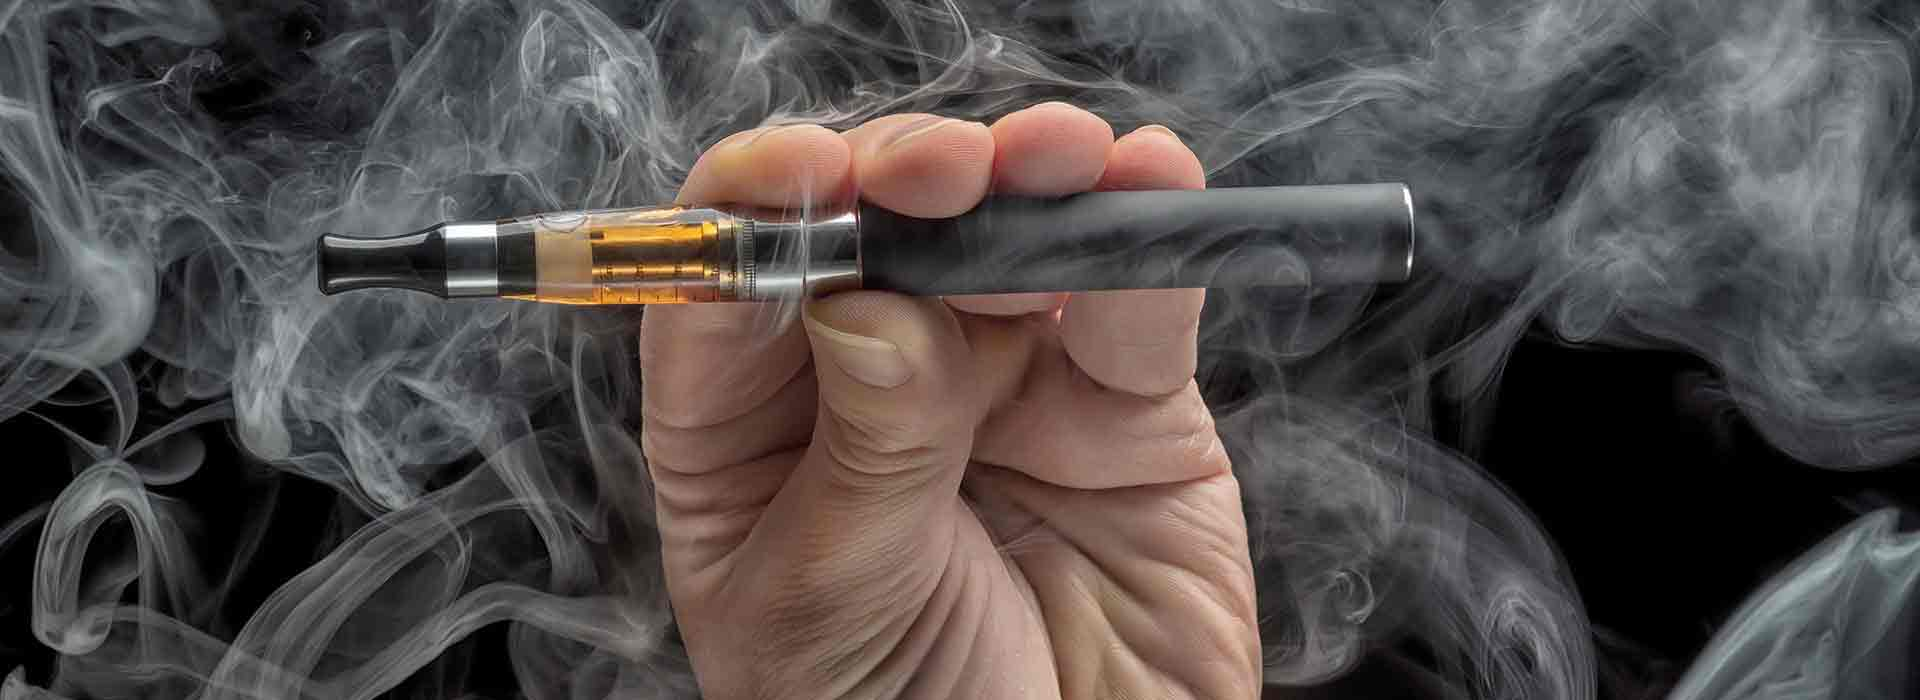 Overview Of Health Vaporizers Vape Pen Guide